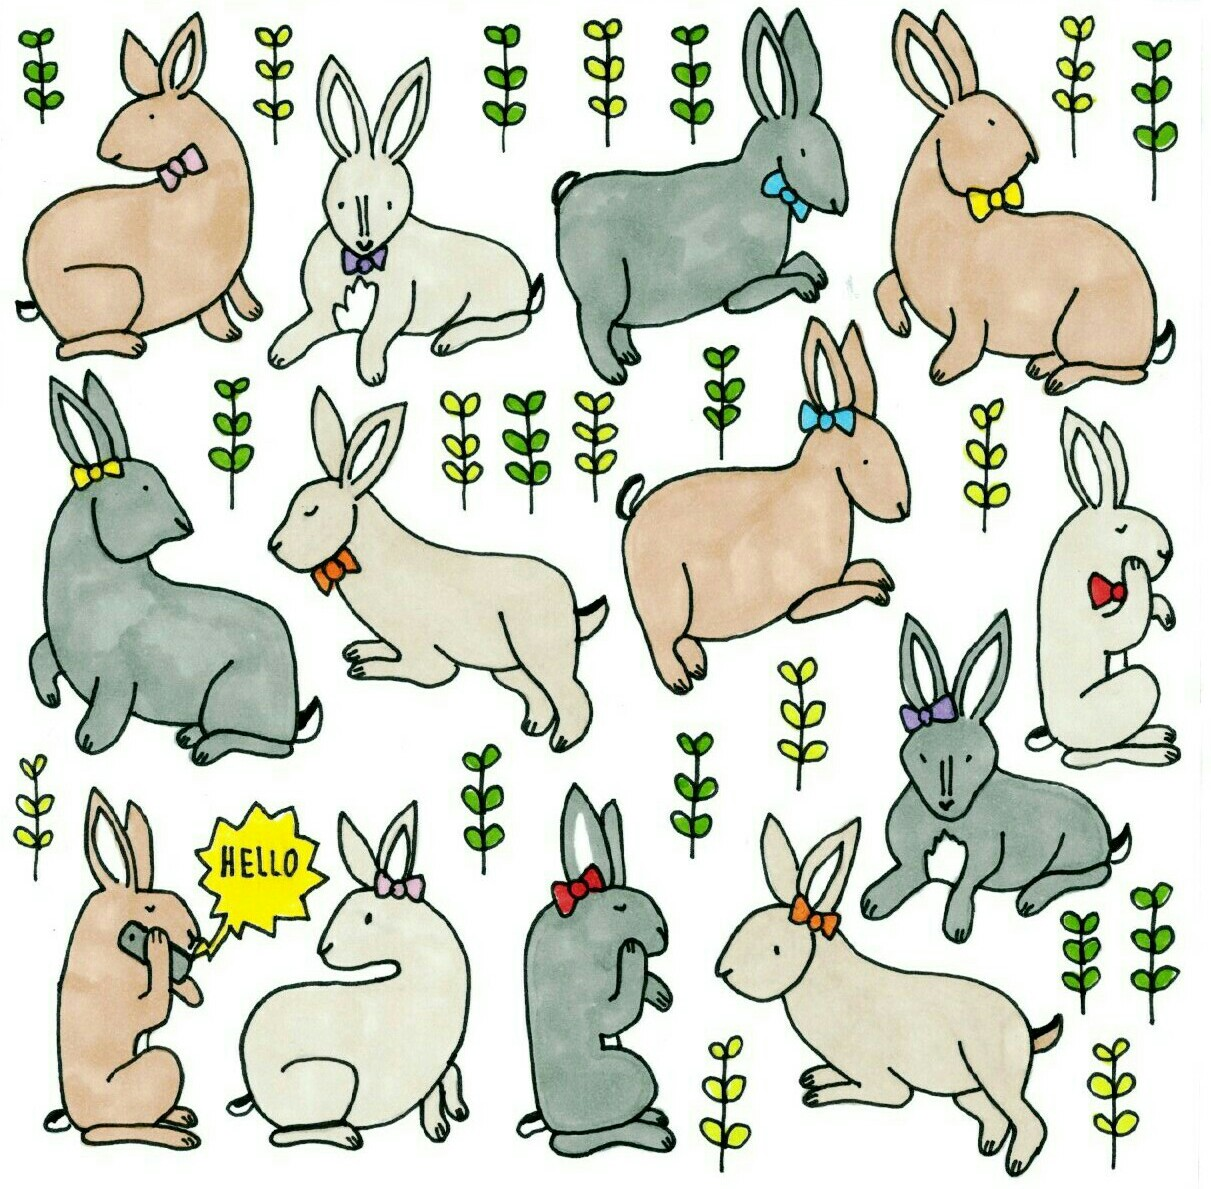 Bunnies in Bows by Sophy Nixon 2017